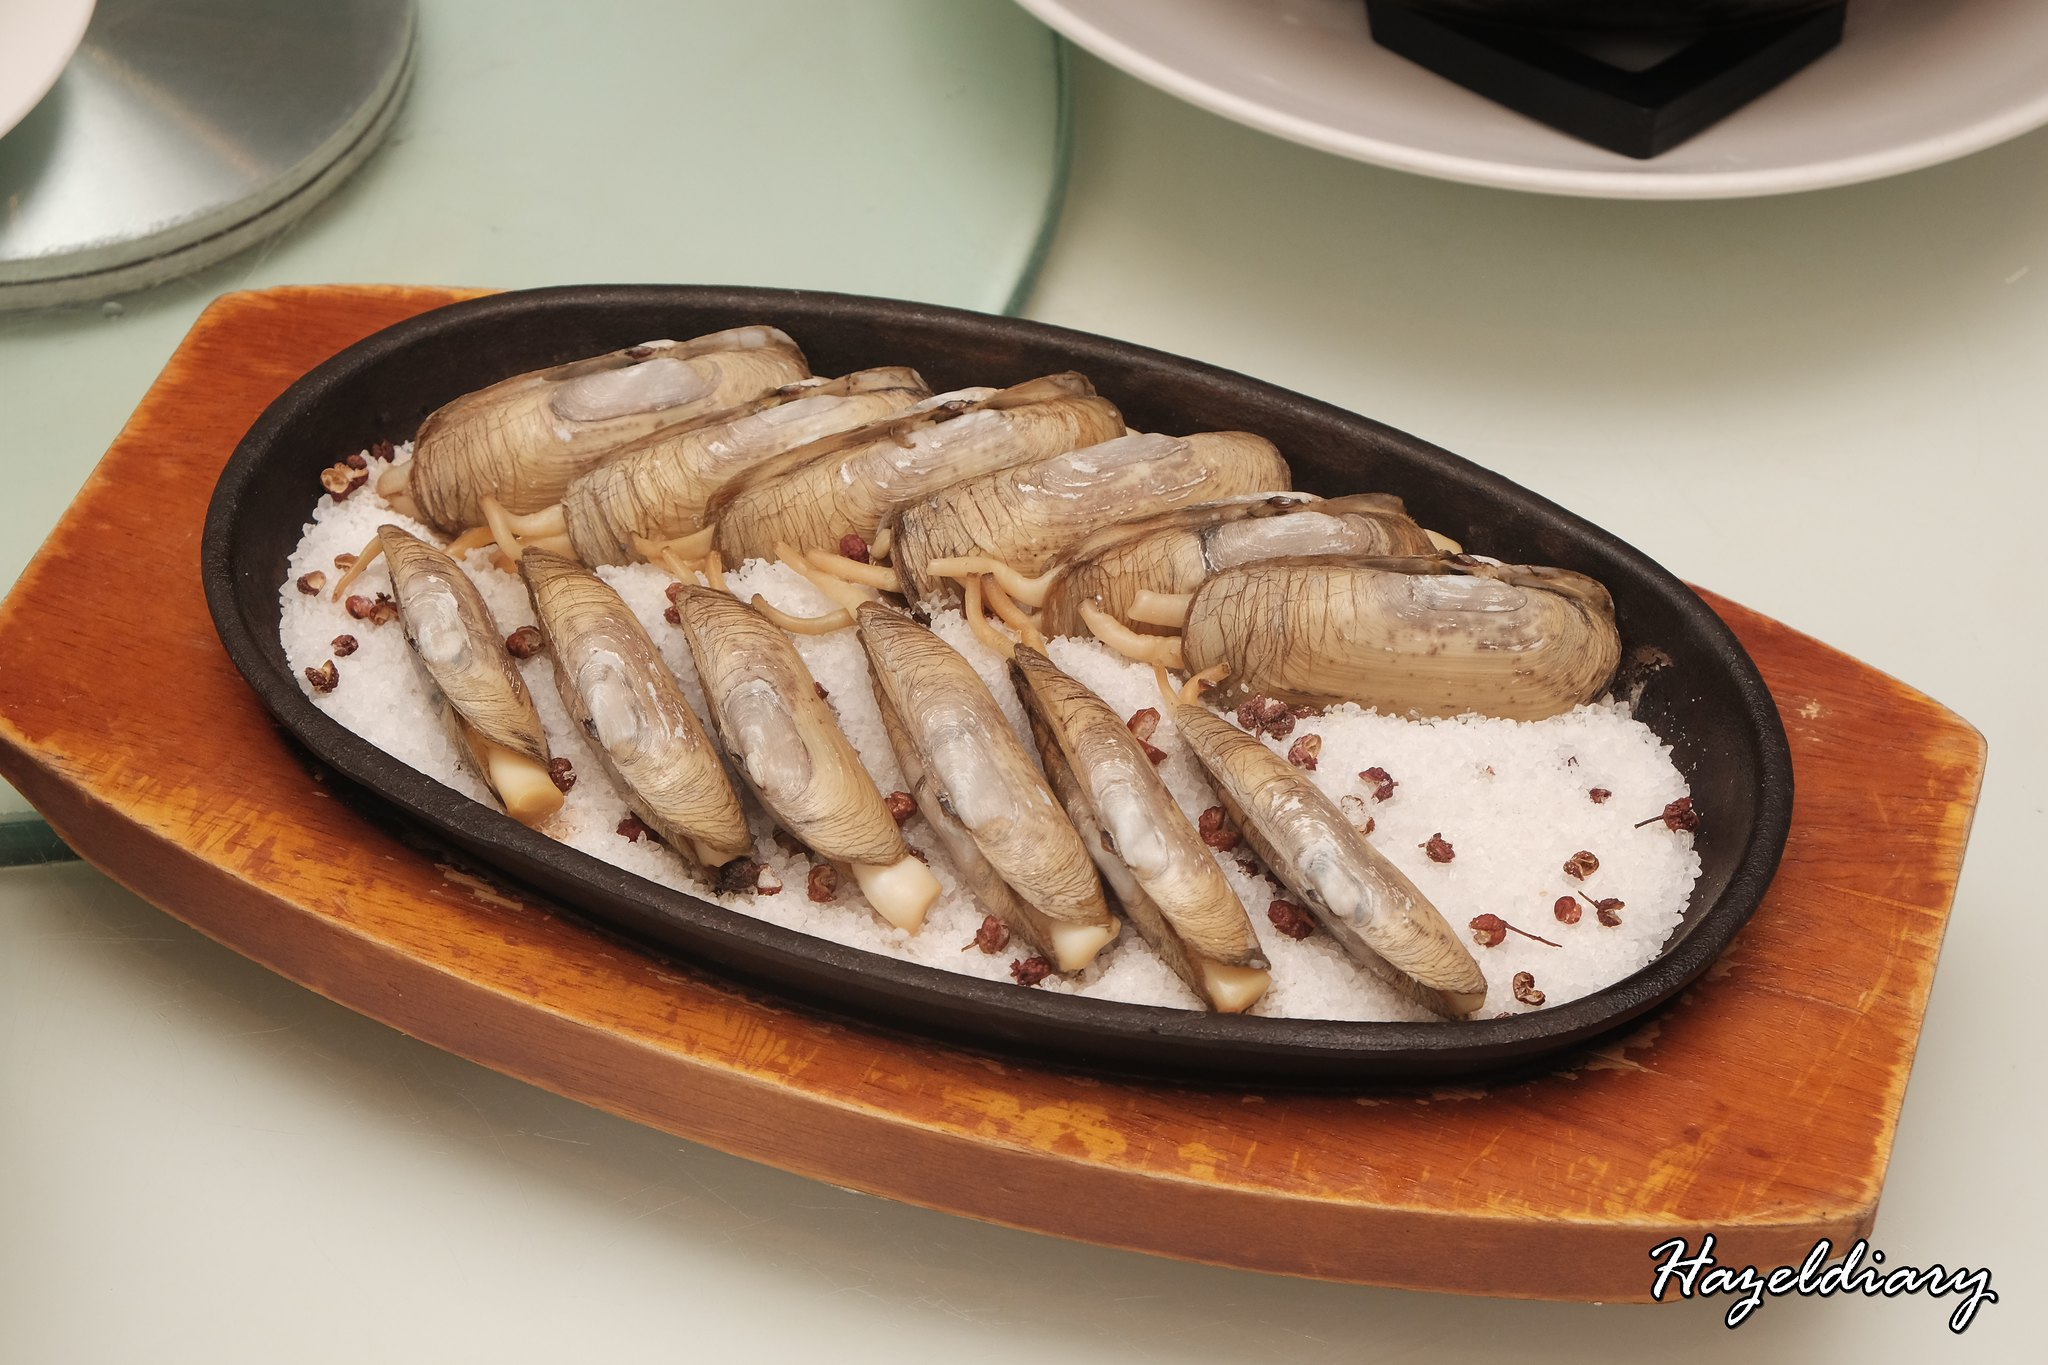 Putien-Baked DUOTOU Clam on Hot Plate